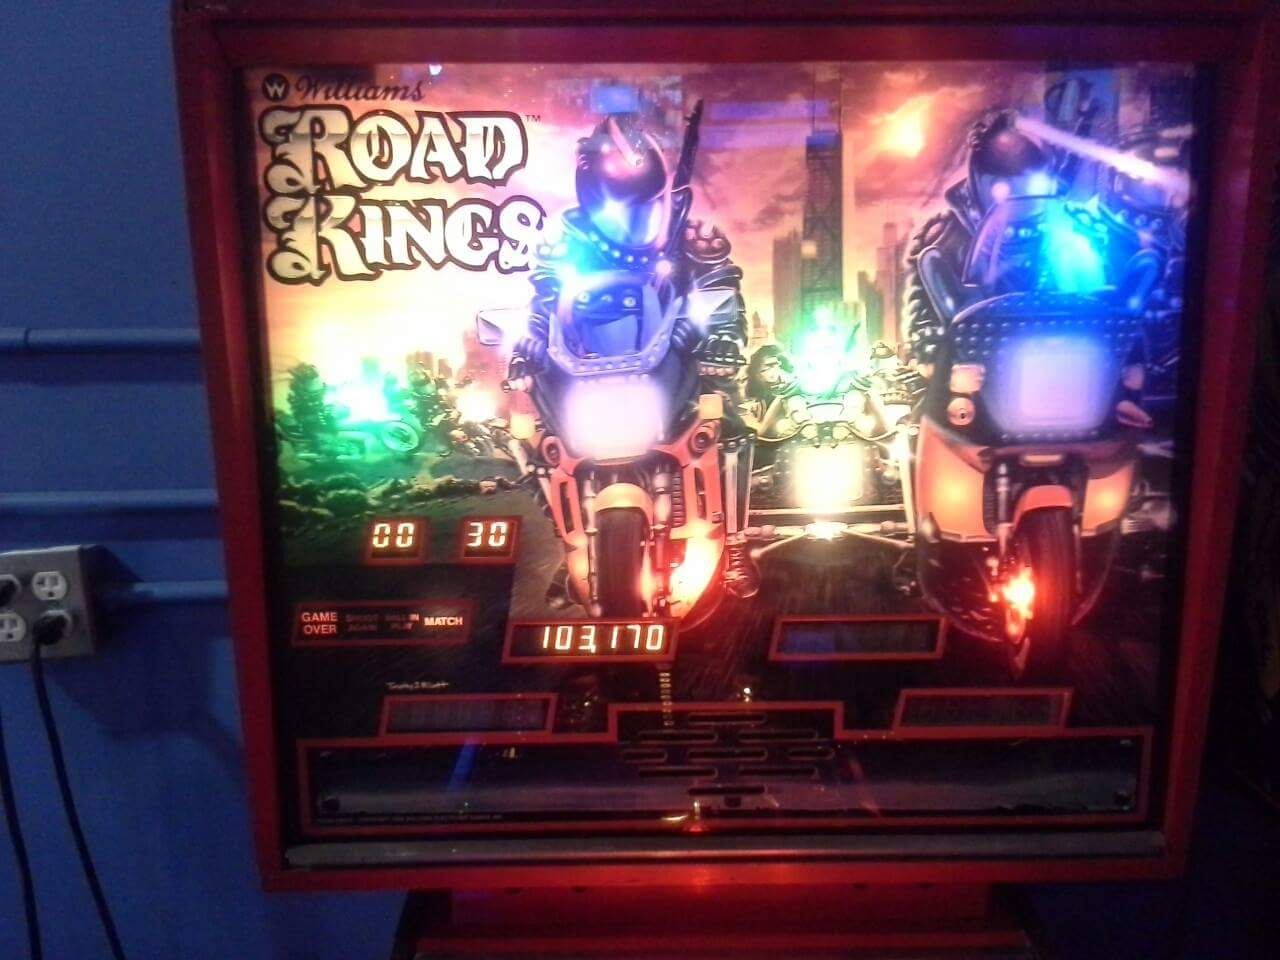 Road Kings 103,170 points